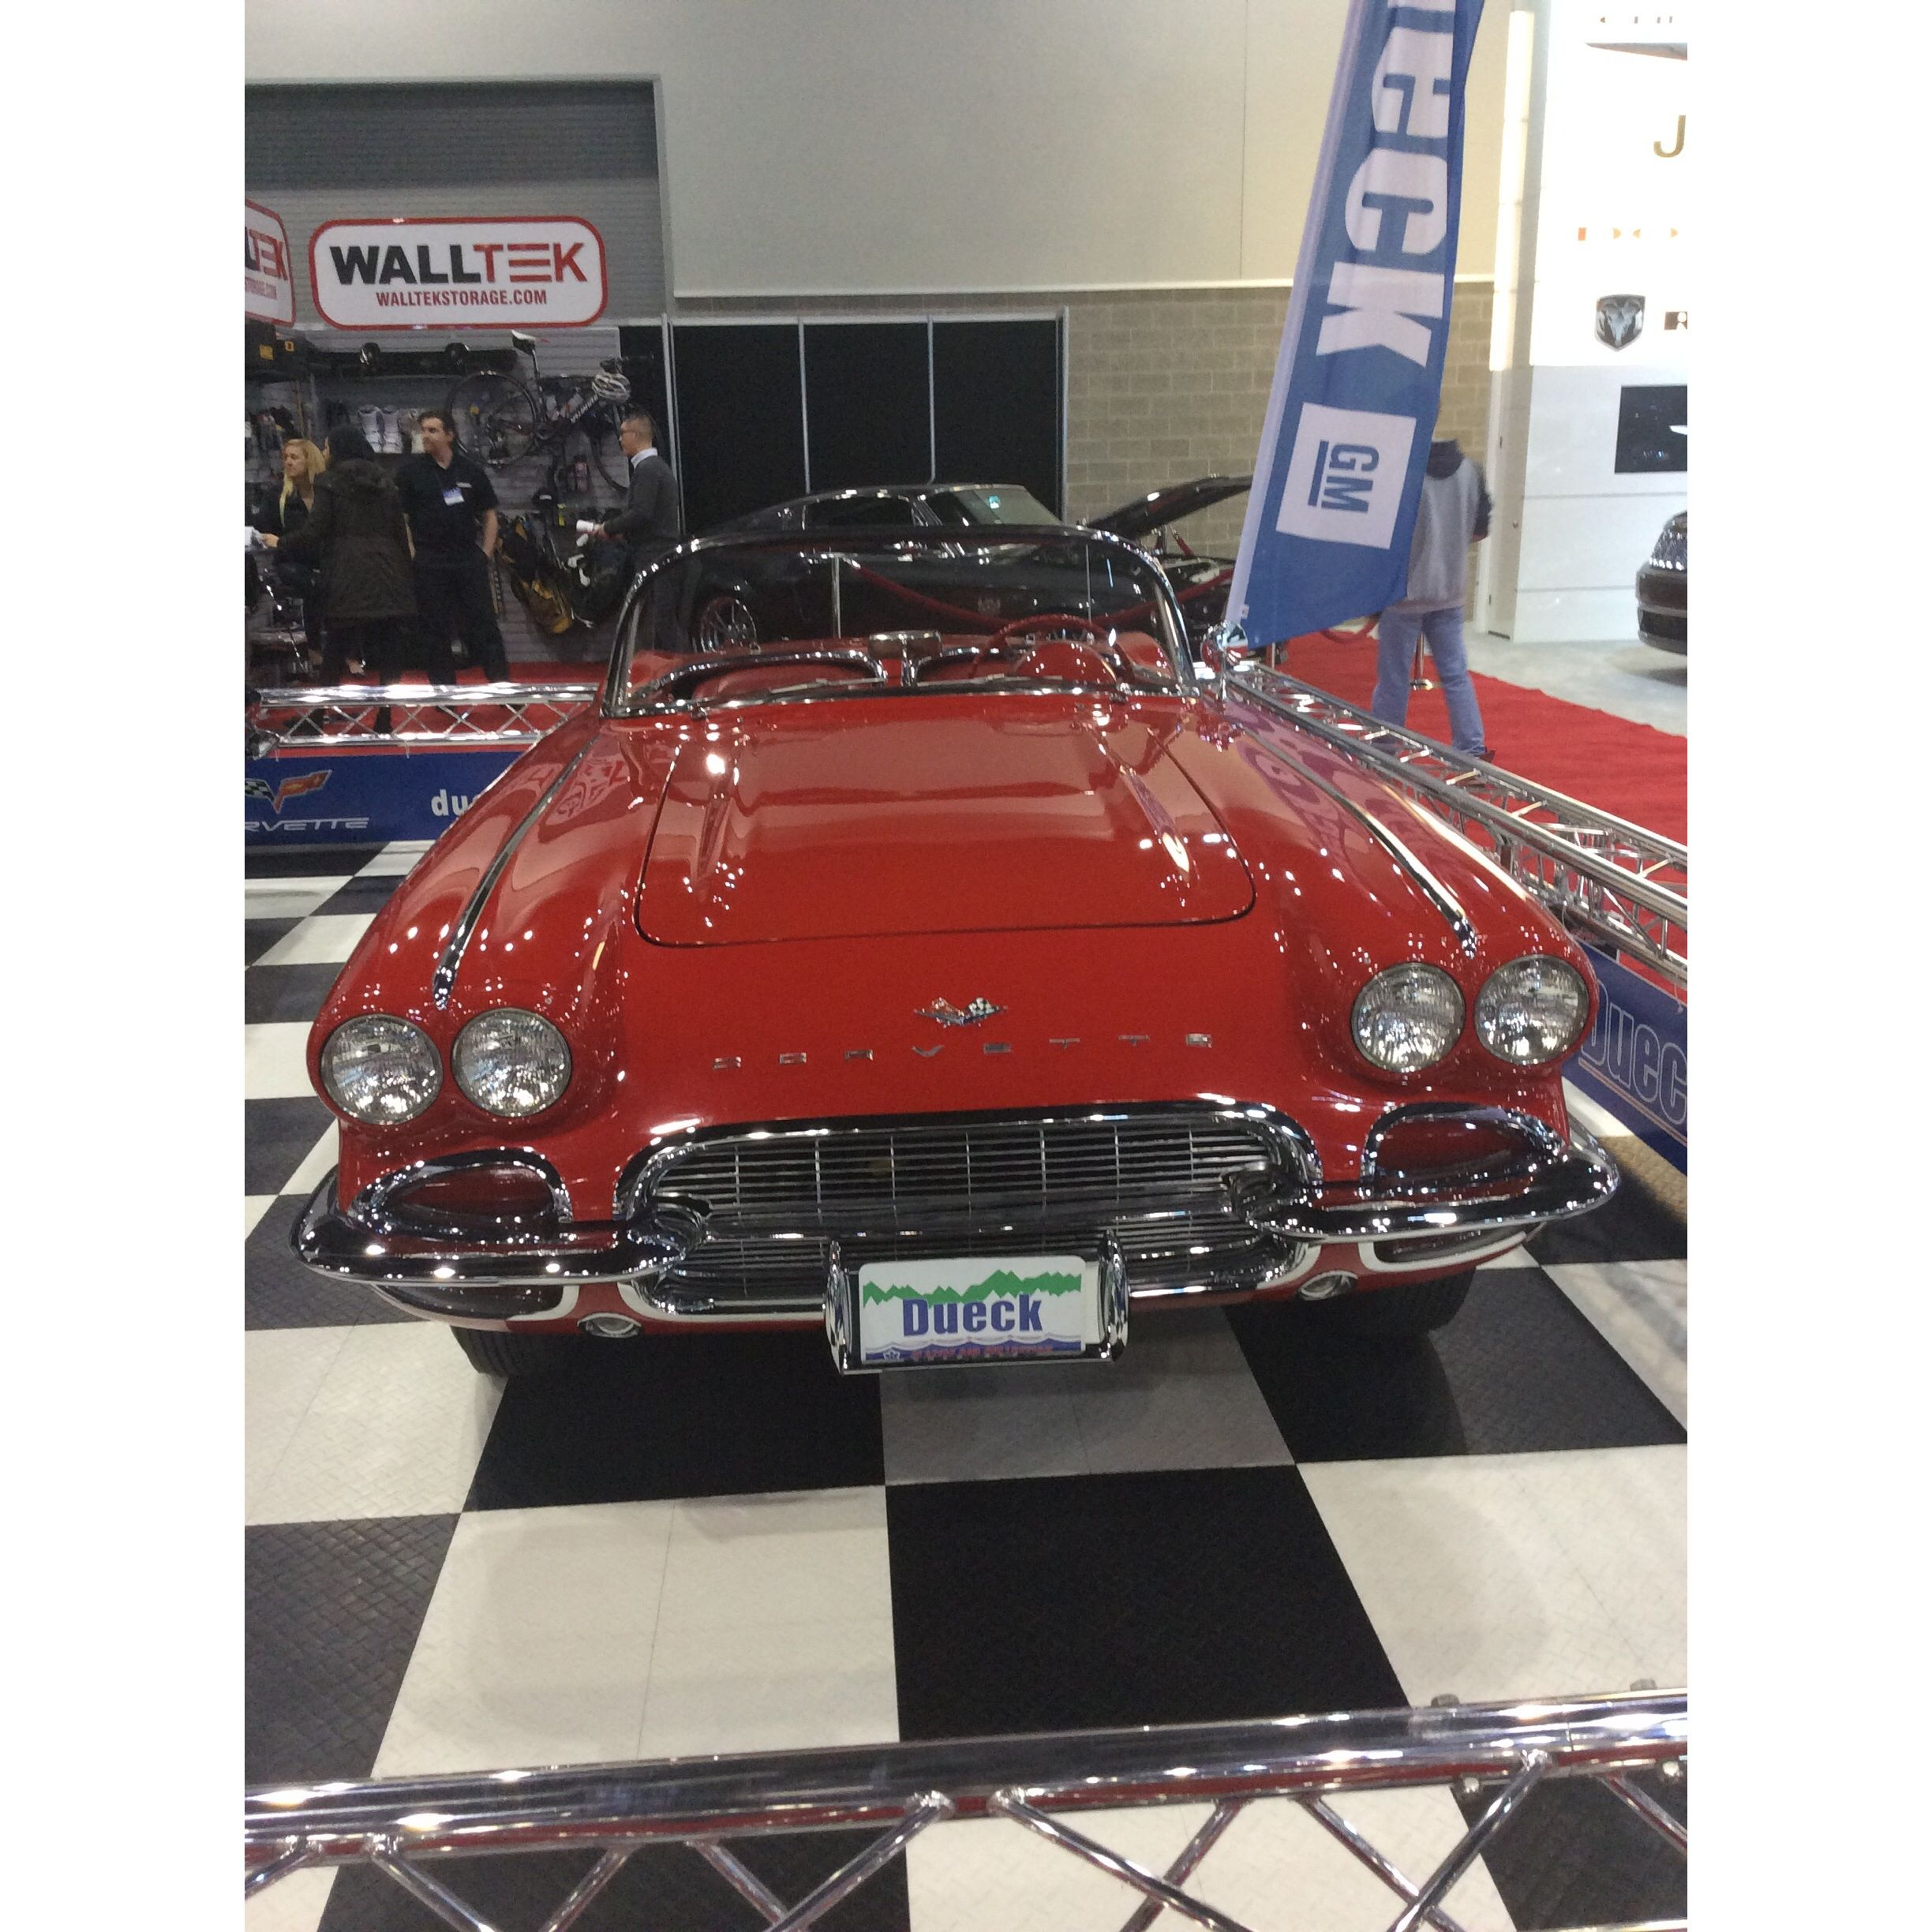 '61 Corvette from The Dueck Auto Group's Vintage Car Collection